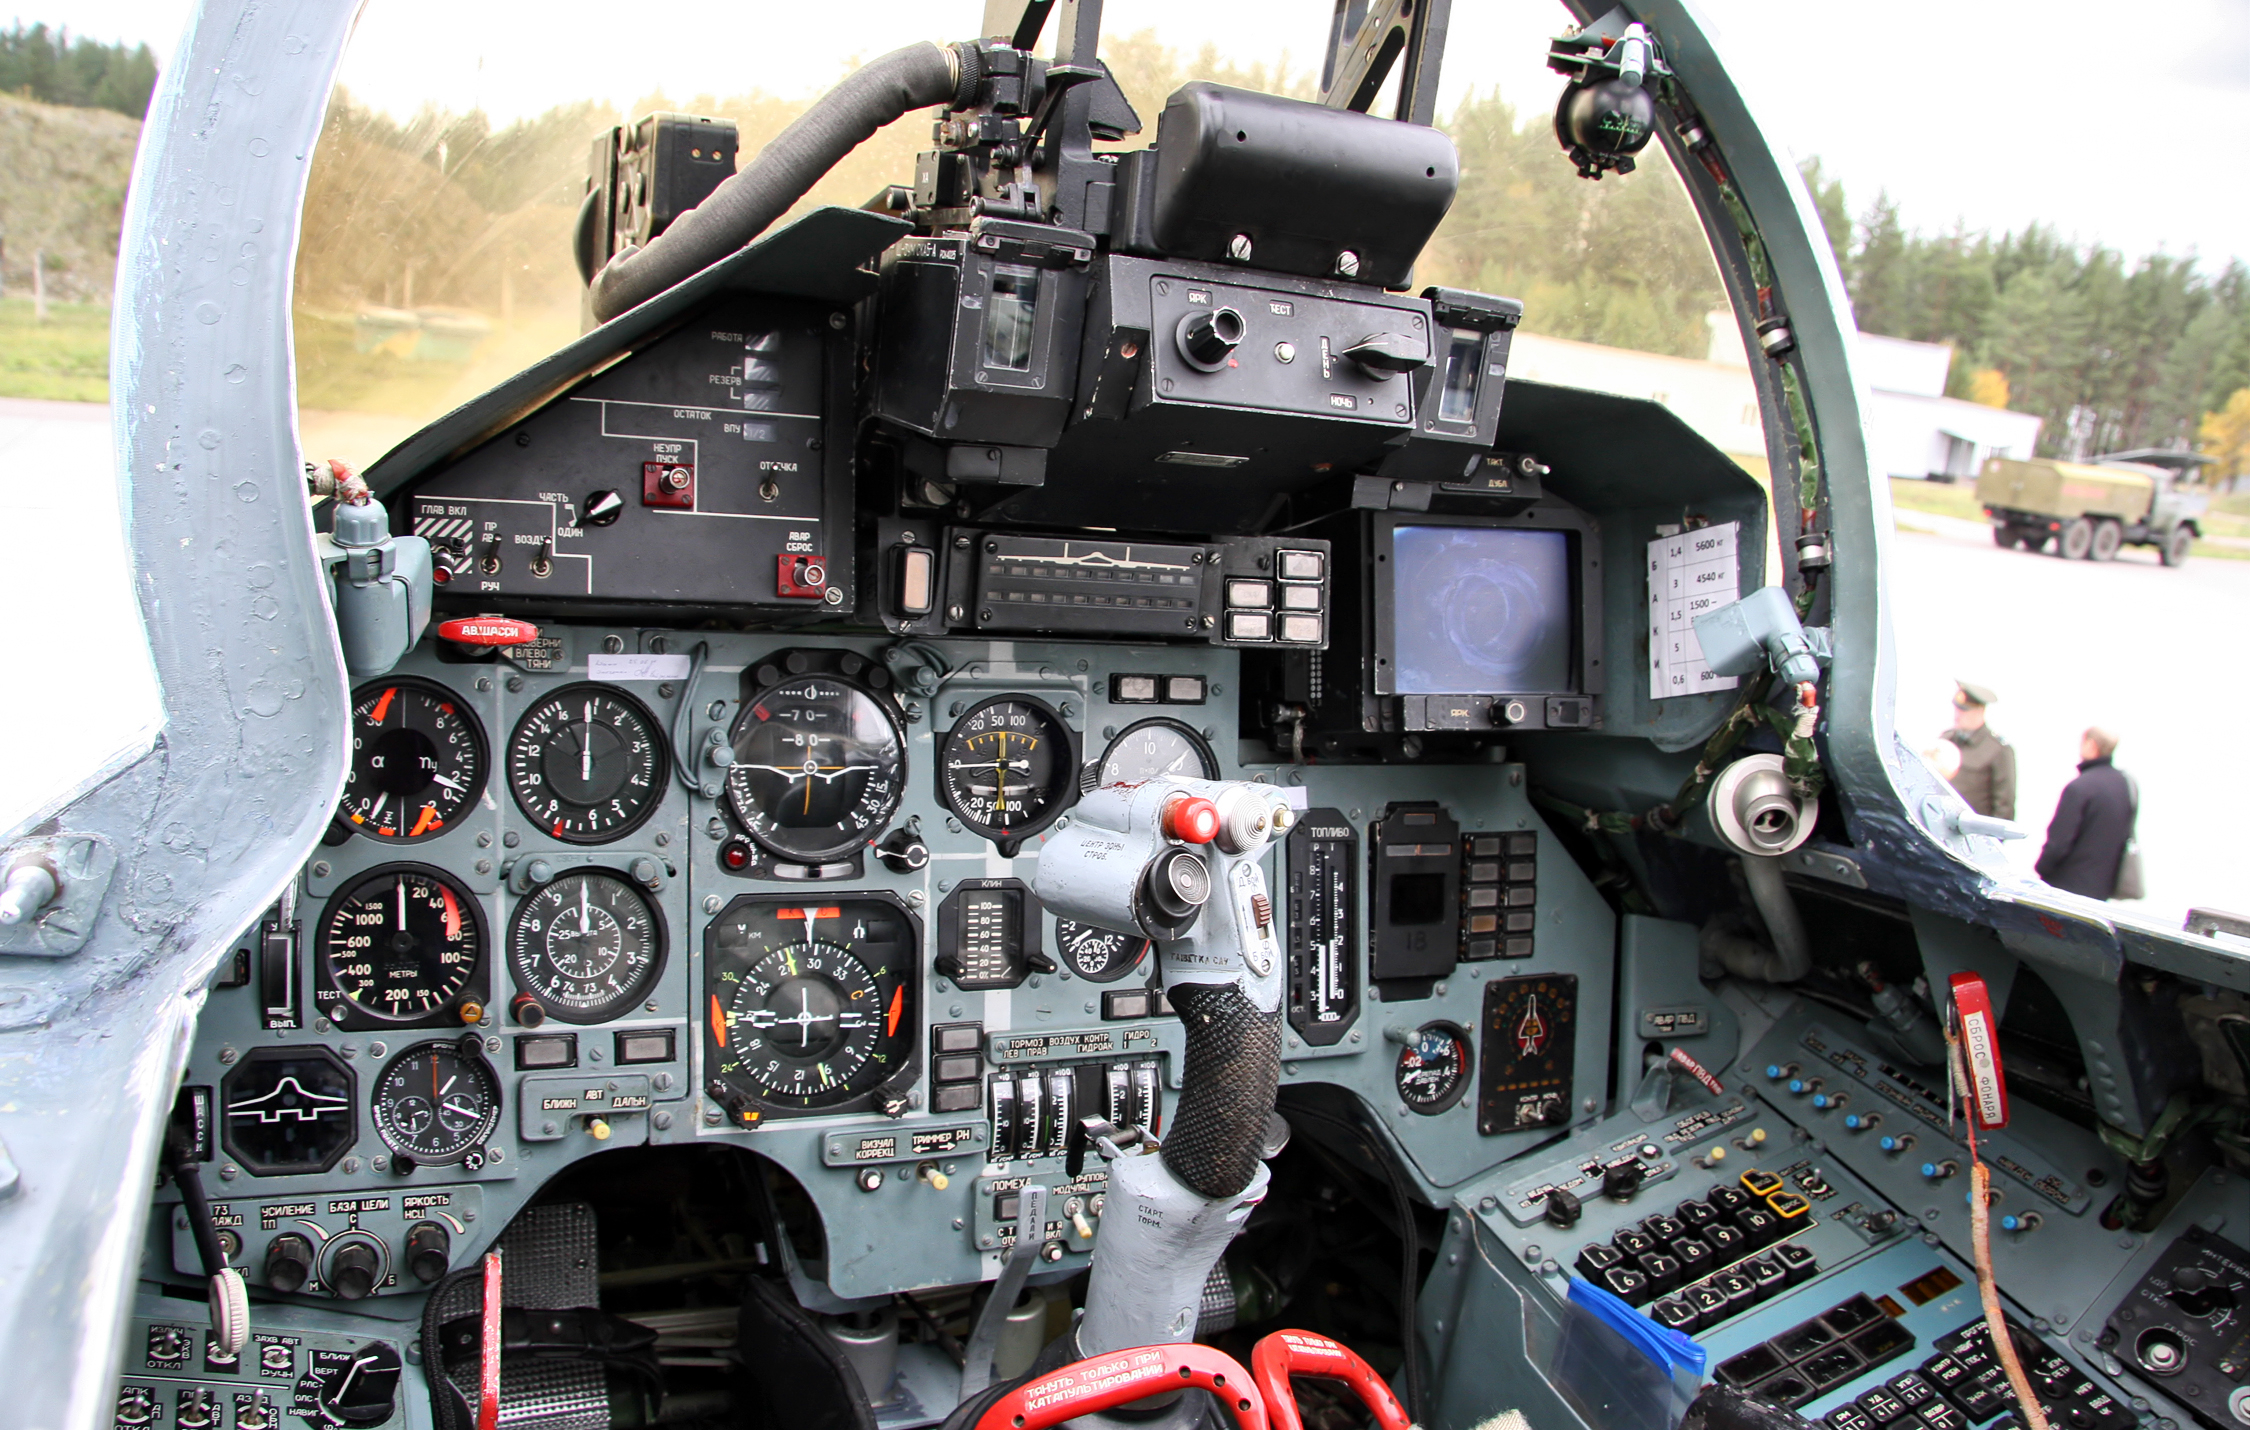 The avionics suite inside an Su-27 Flanker. (Photo from Wikimedia)